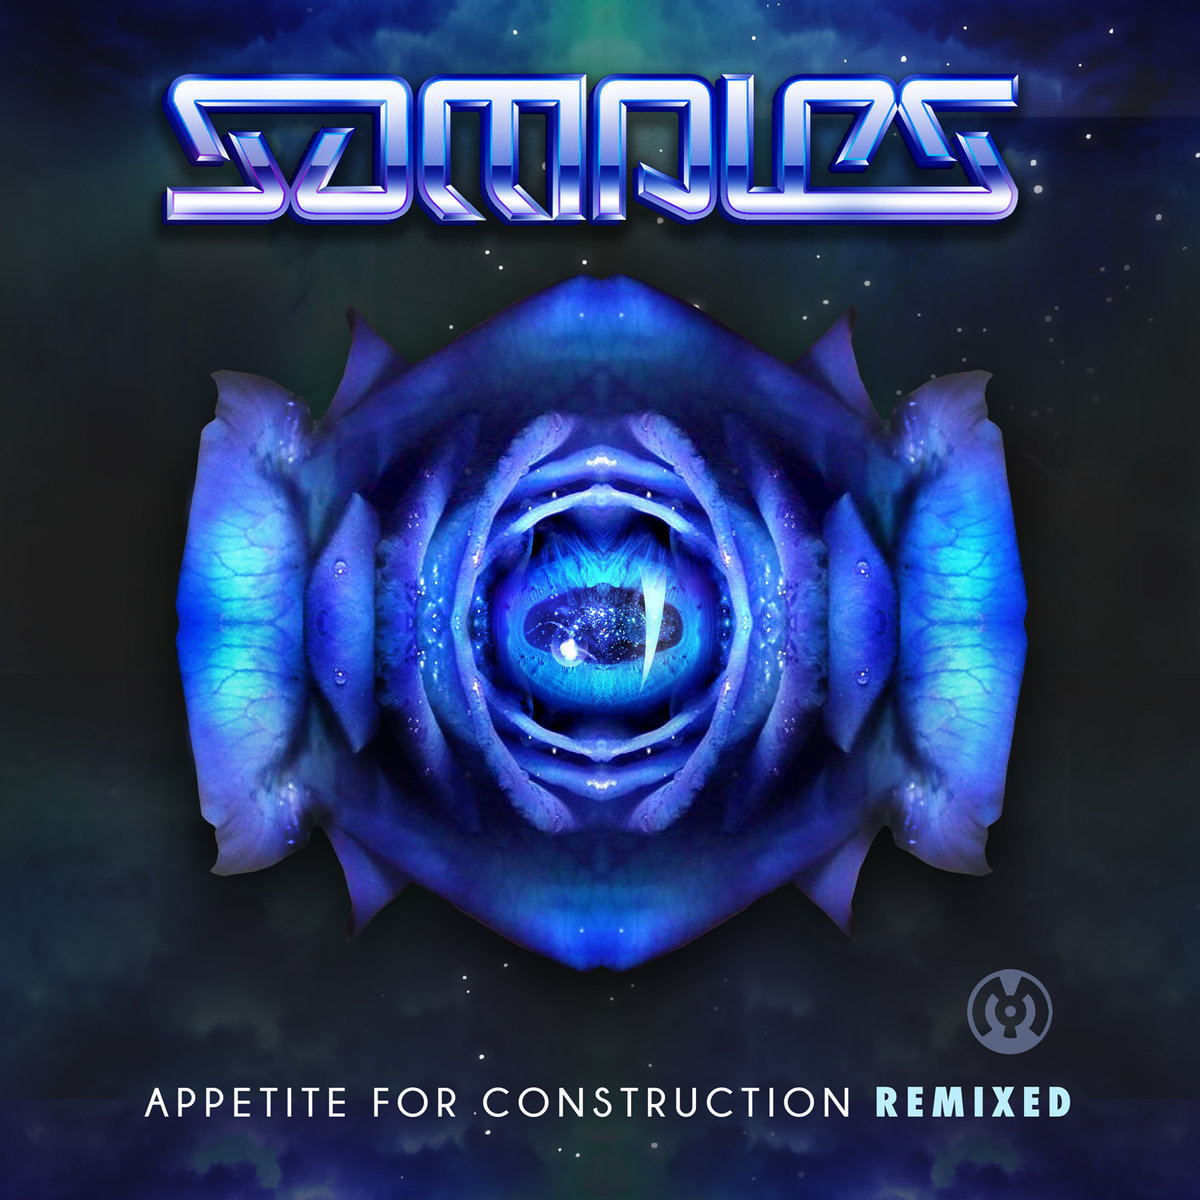 Samples - Limitless (Kraddy Remix) @ 'Appetite For Construction Remixed' album (electronic, dubstep)